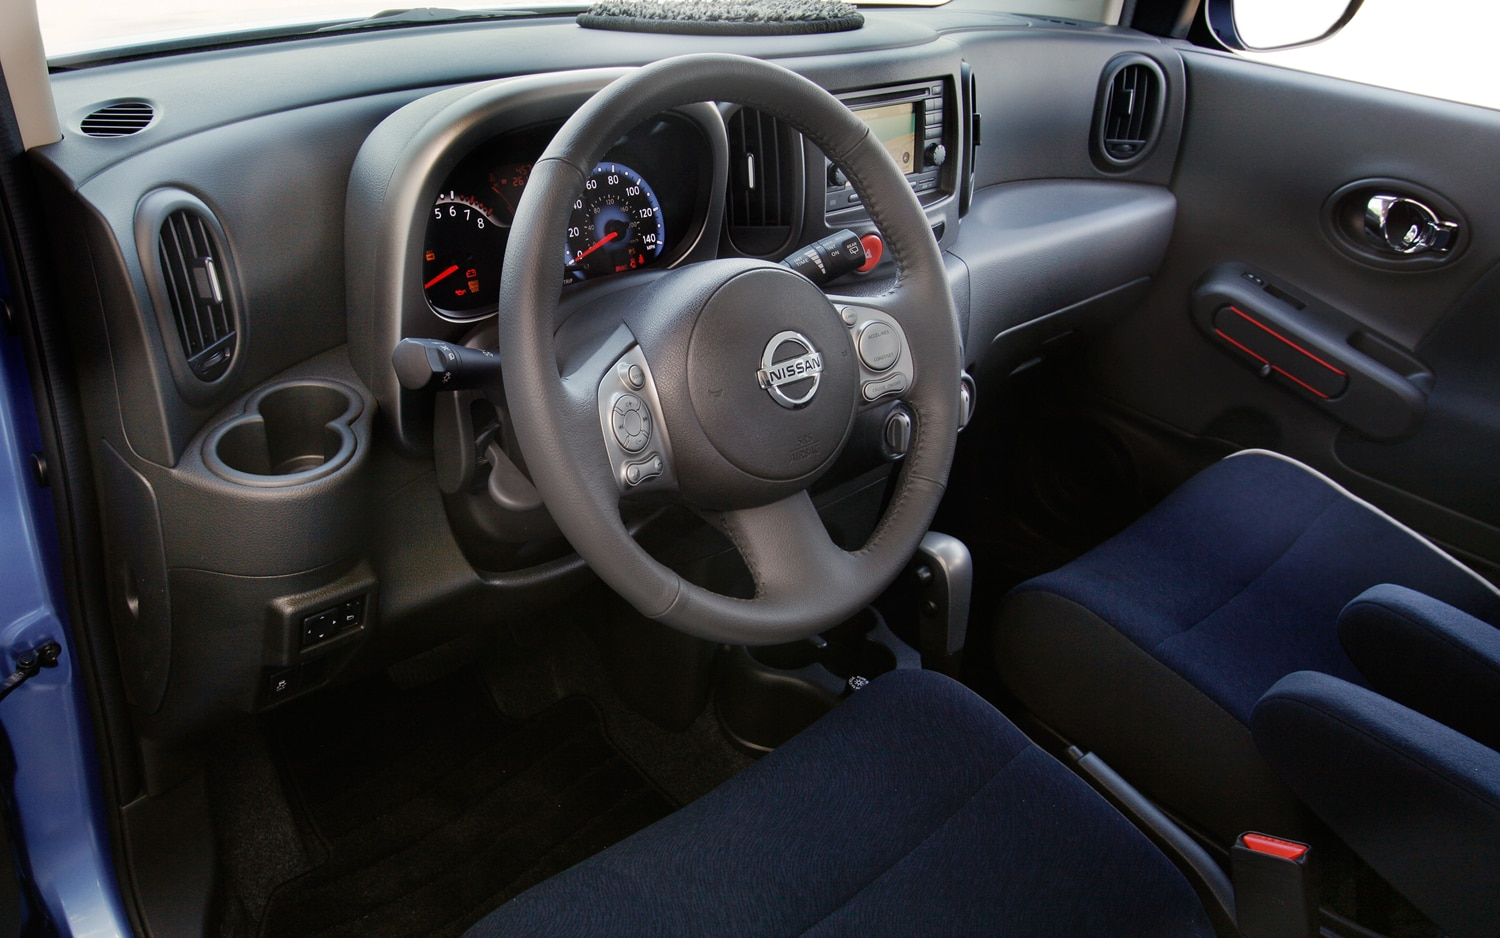 hight resolution of 2012 nissan cube interior view